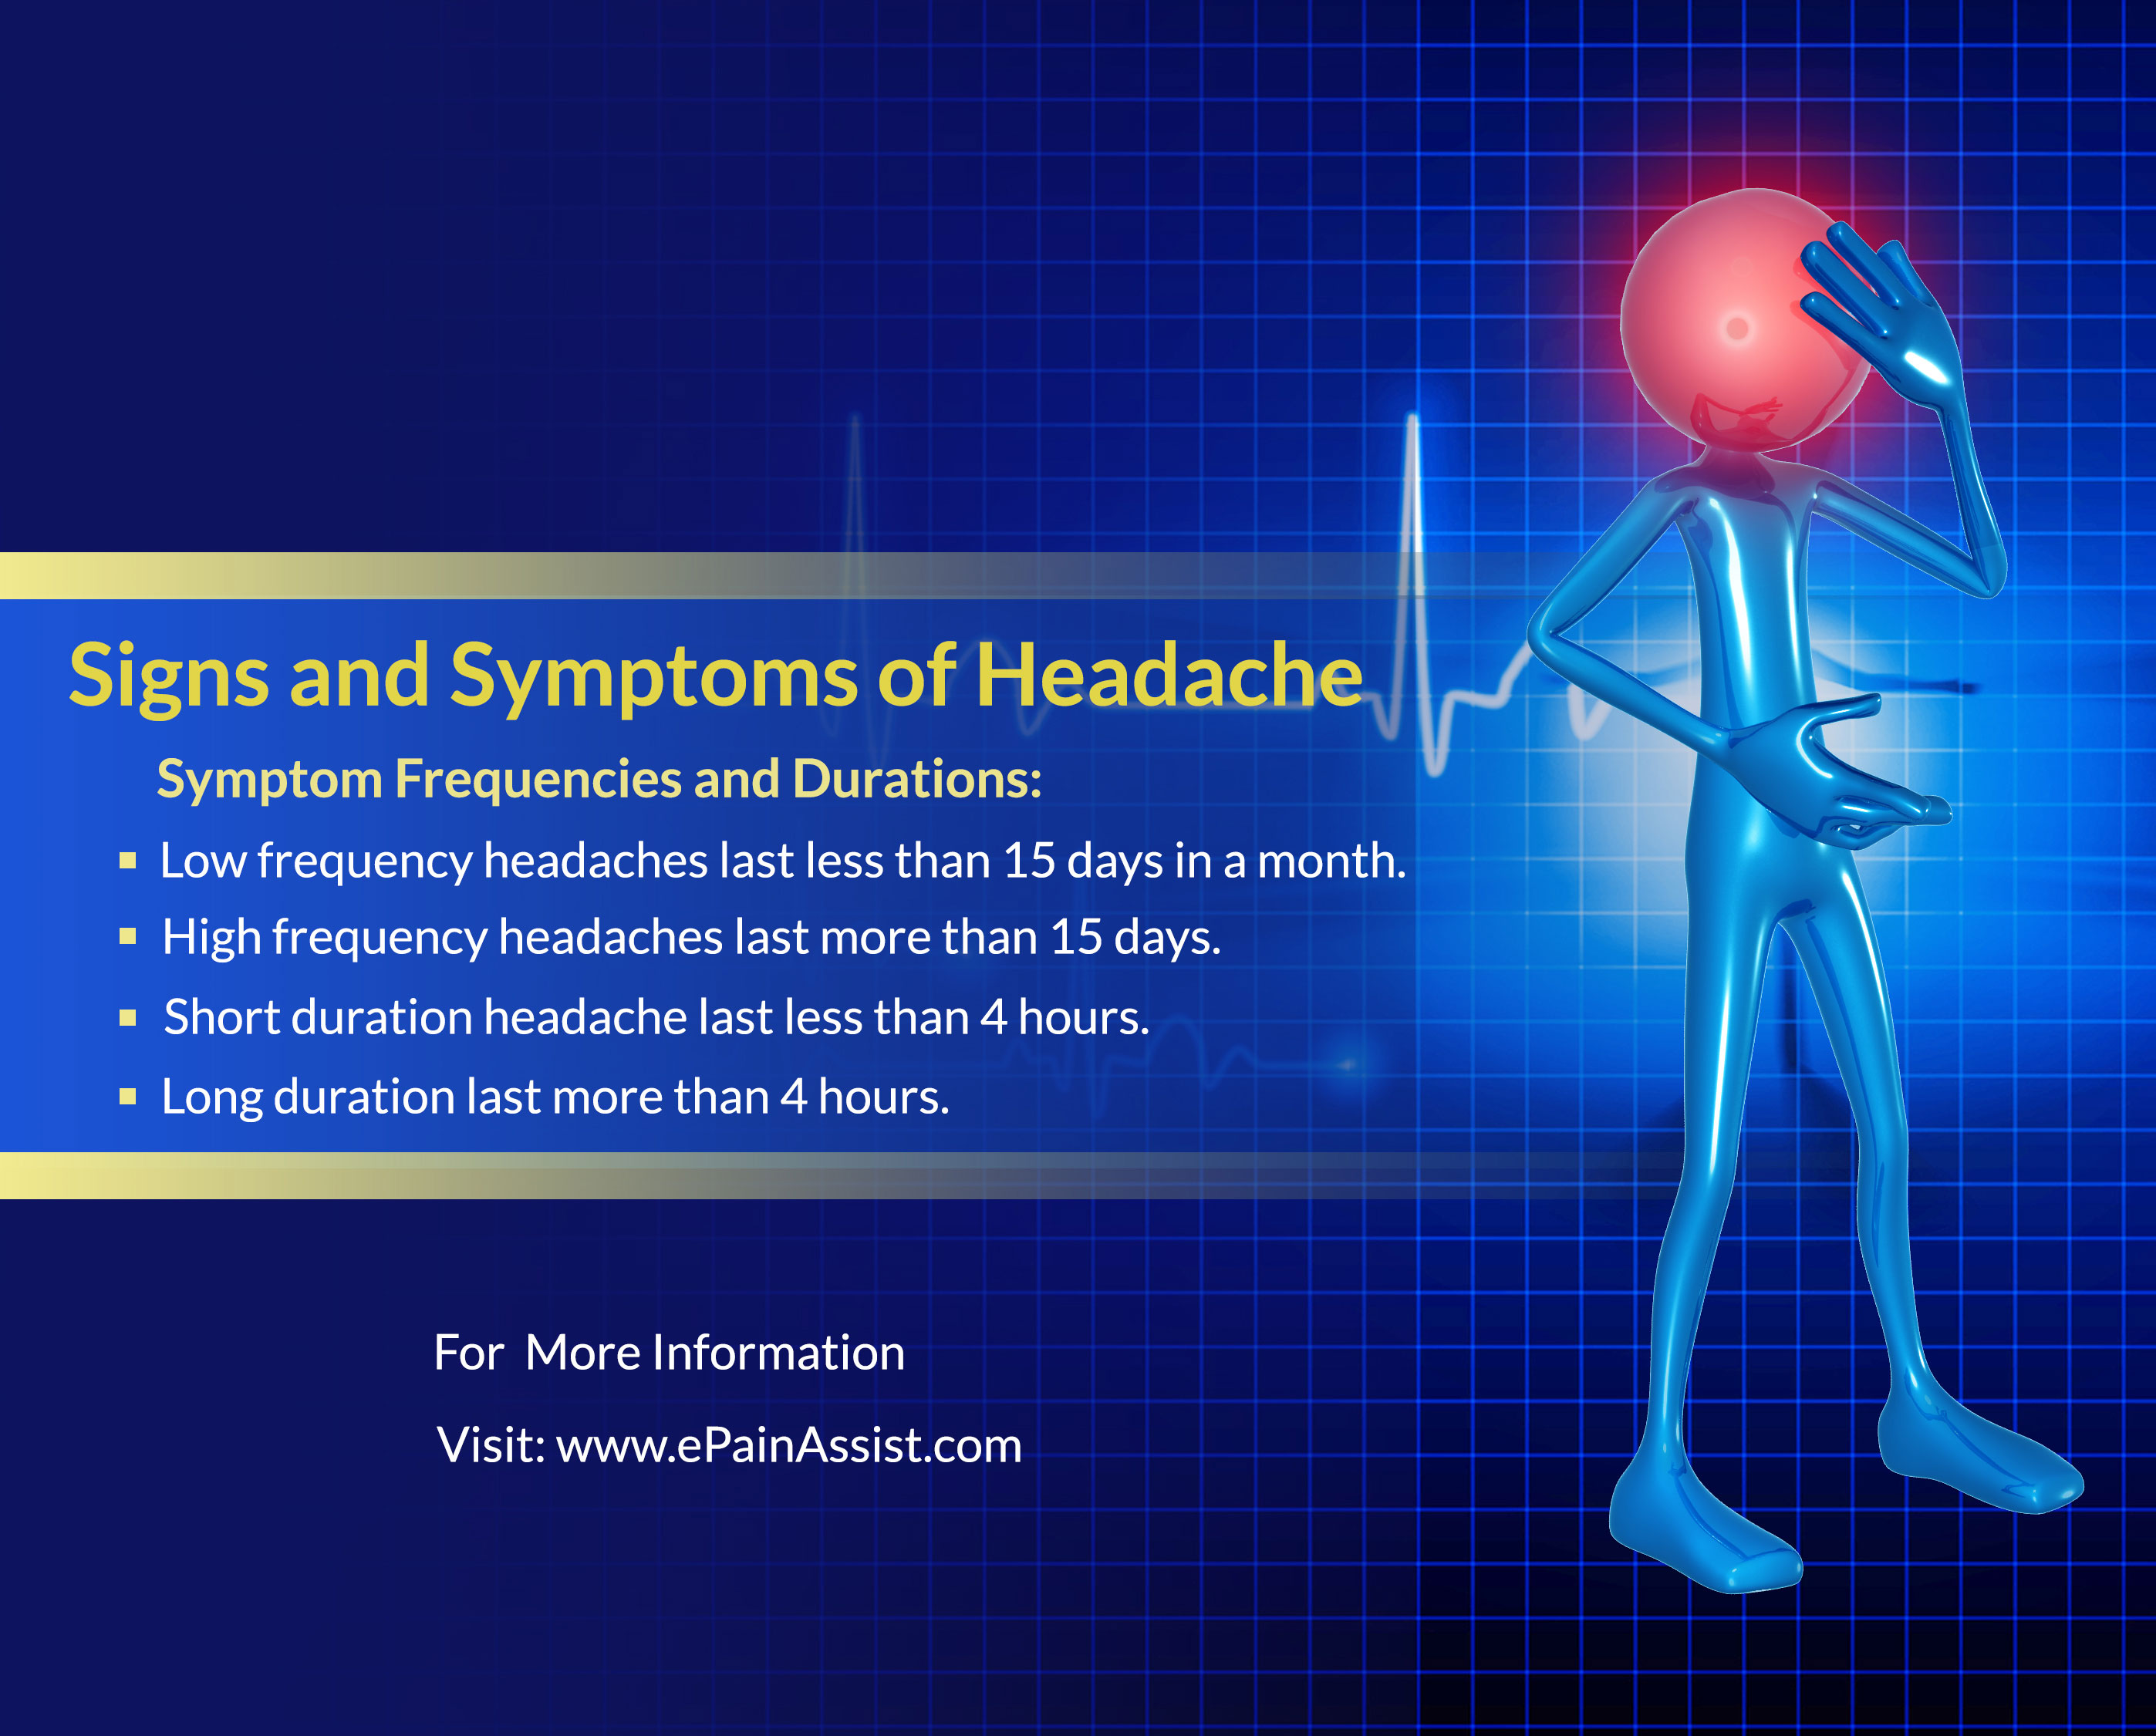 Symptoms of Migraine Headaches